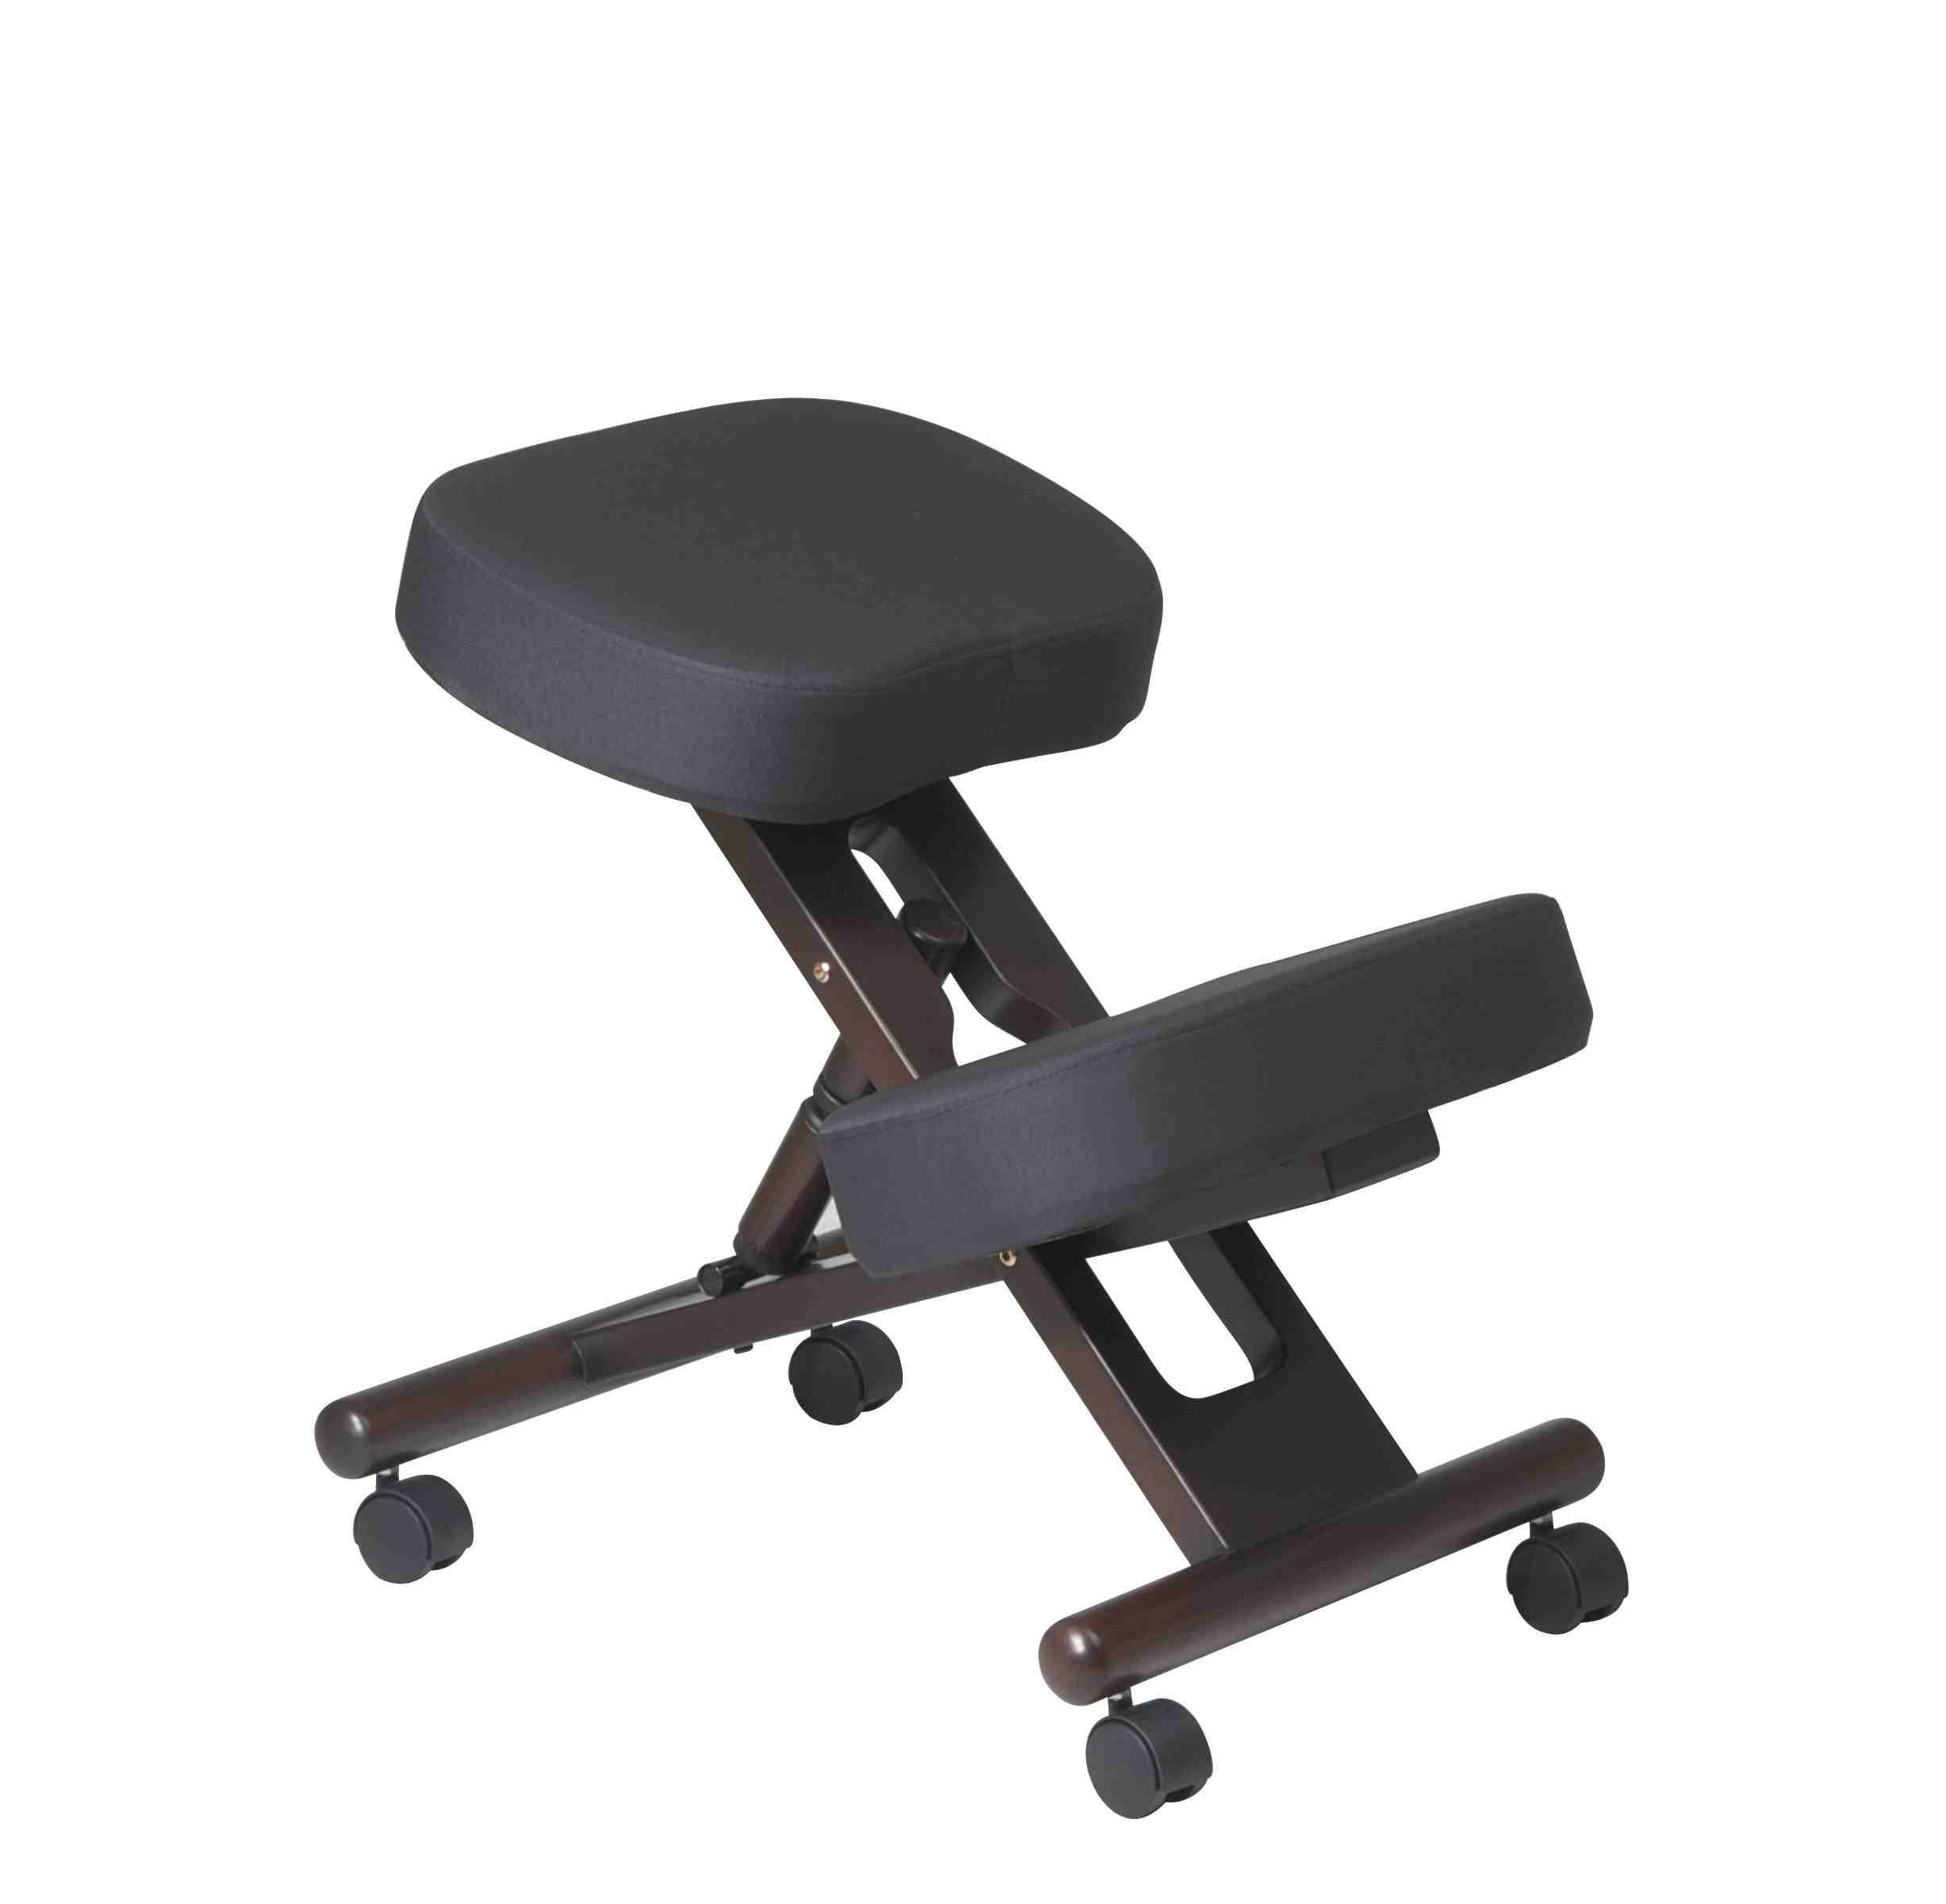 Office Star Ergonomically Designed Knee Chair with Casters, Memory Foam and Espresso Finished Wood Base, Black (Renewed) by Office Star